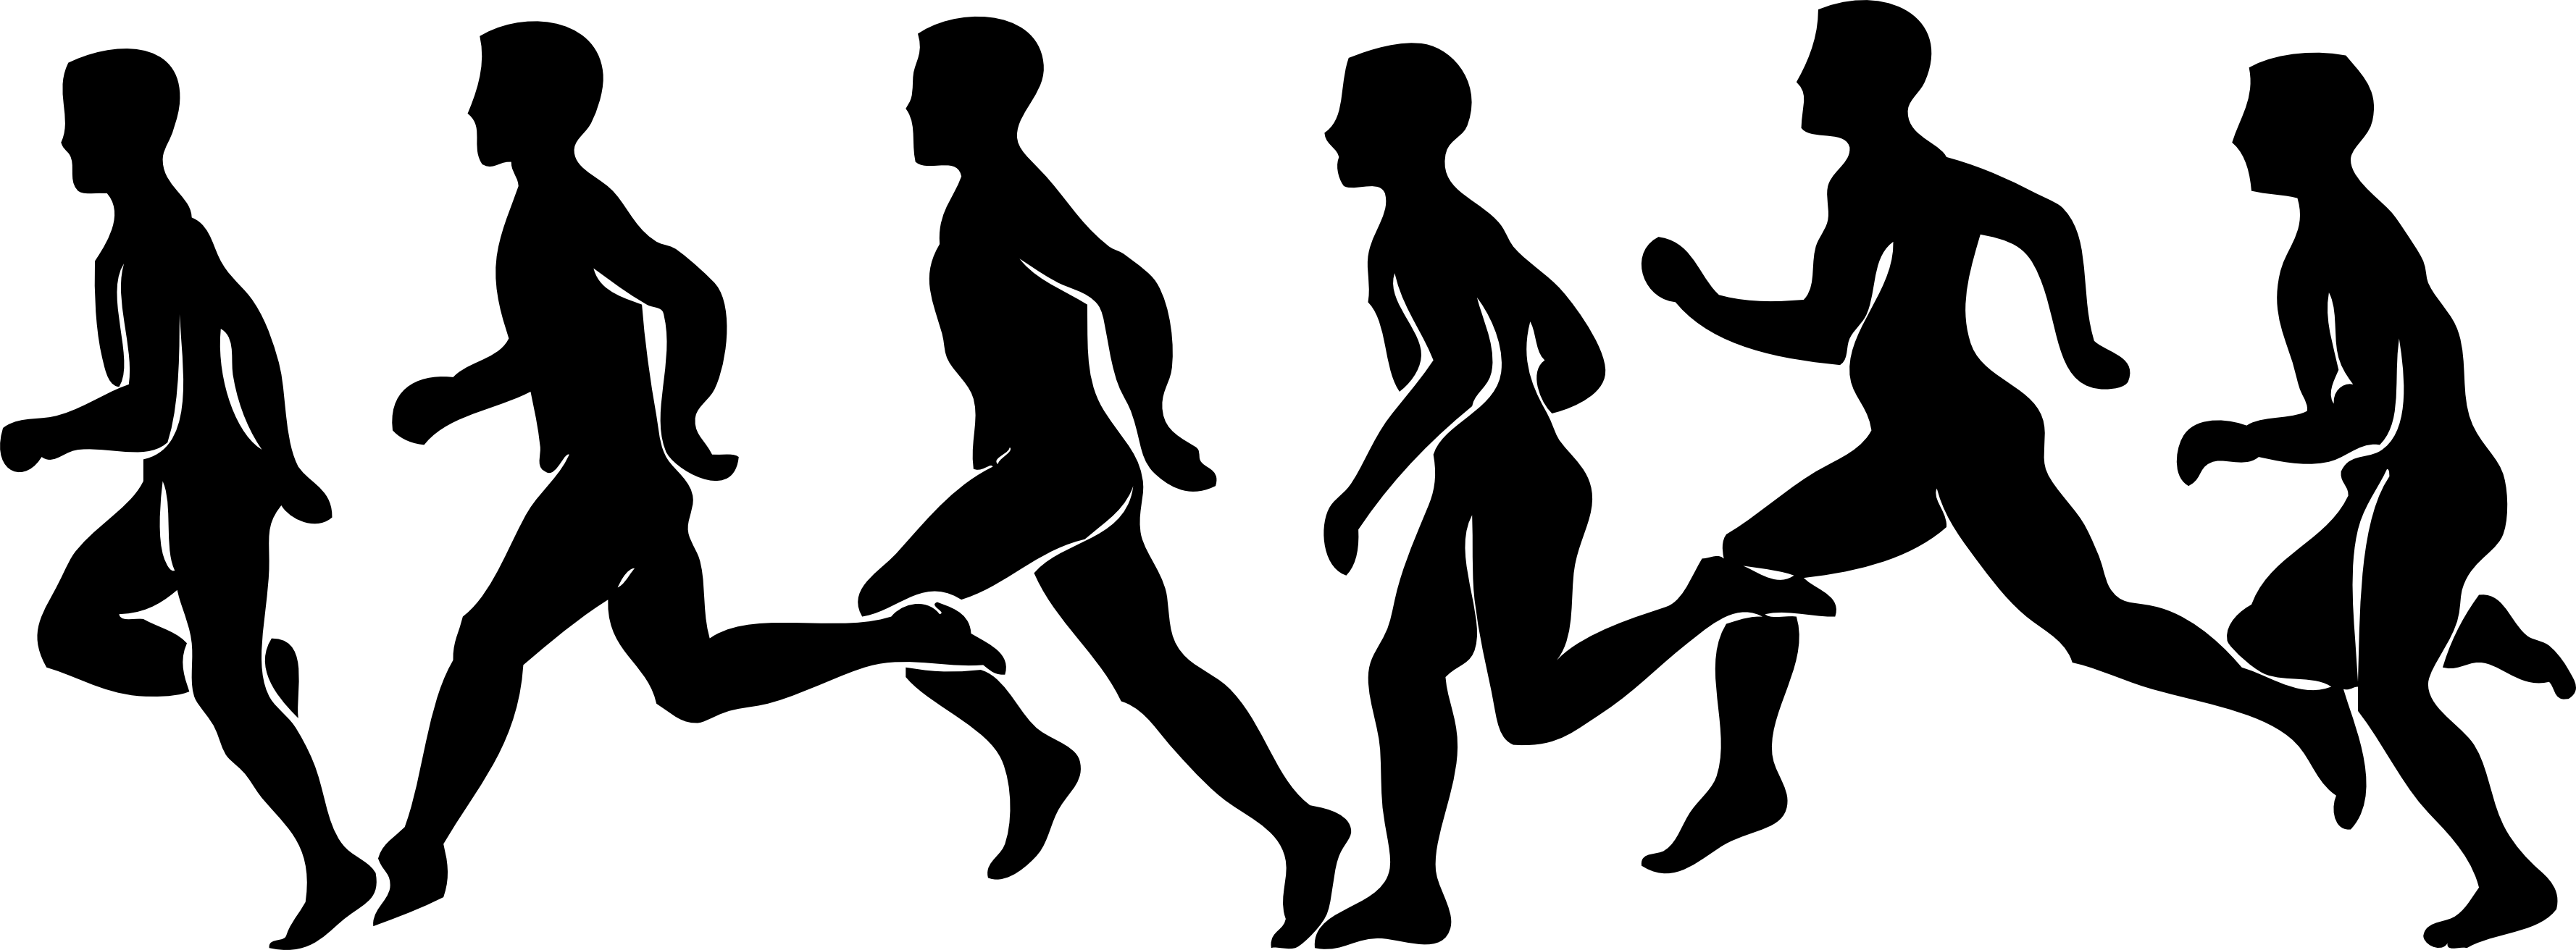 Athlete vector marathon. Collection of running